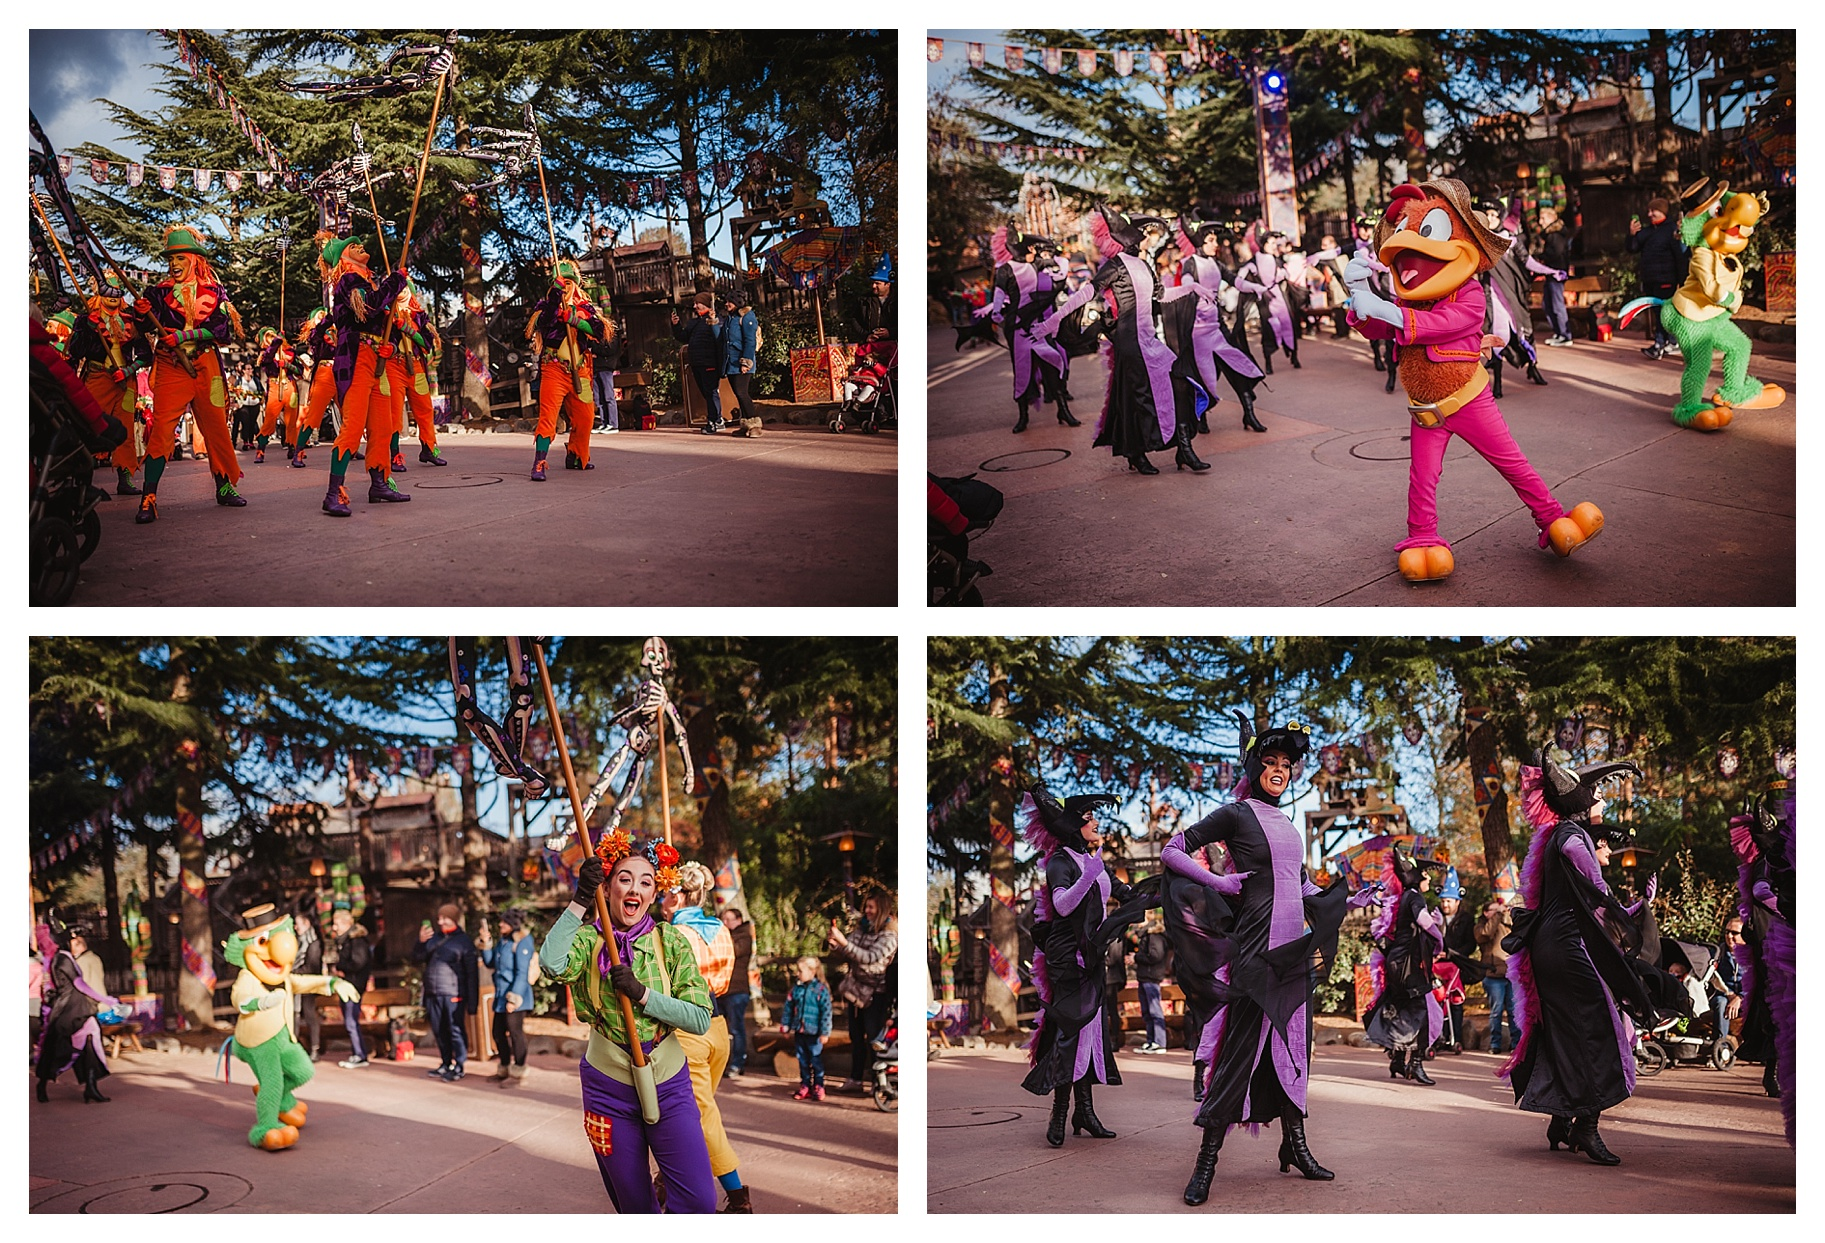 Disneyland Paris Enfants halloween _0974.jpg